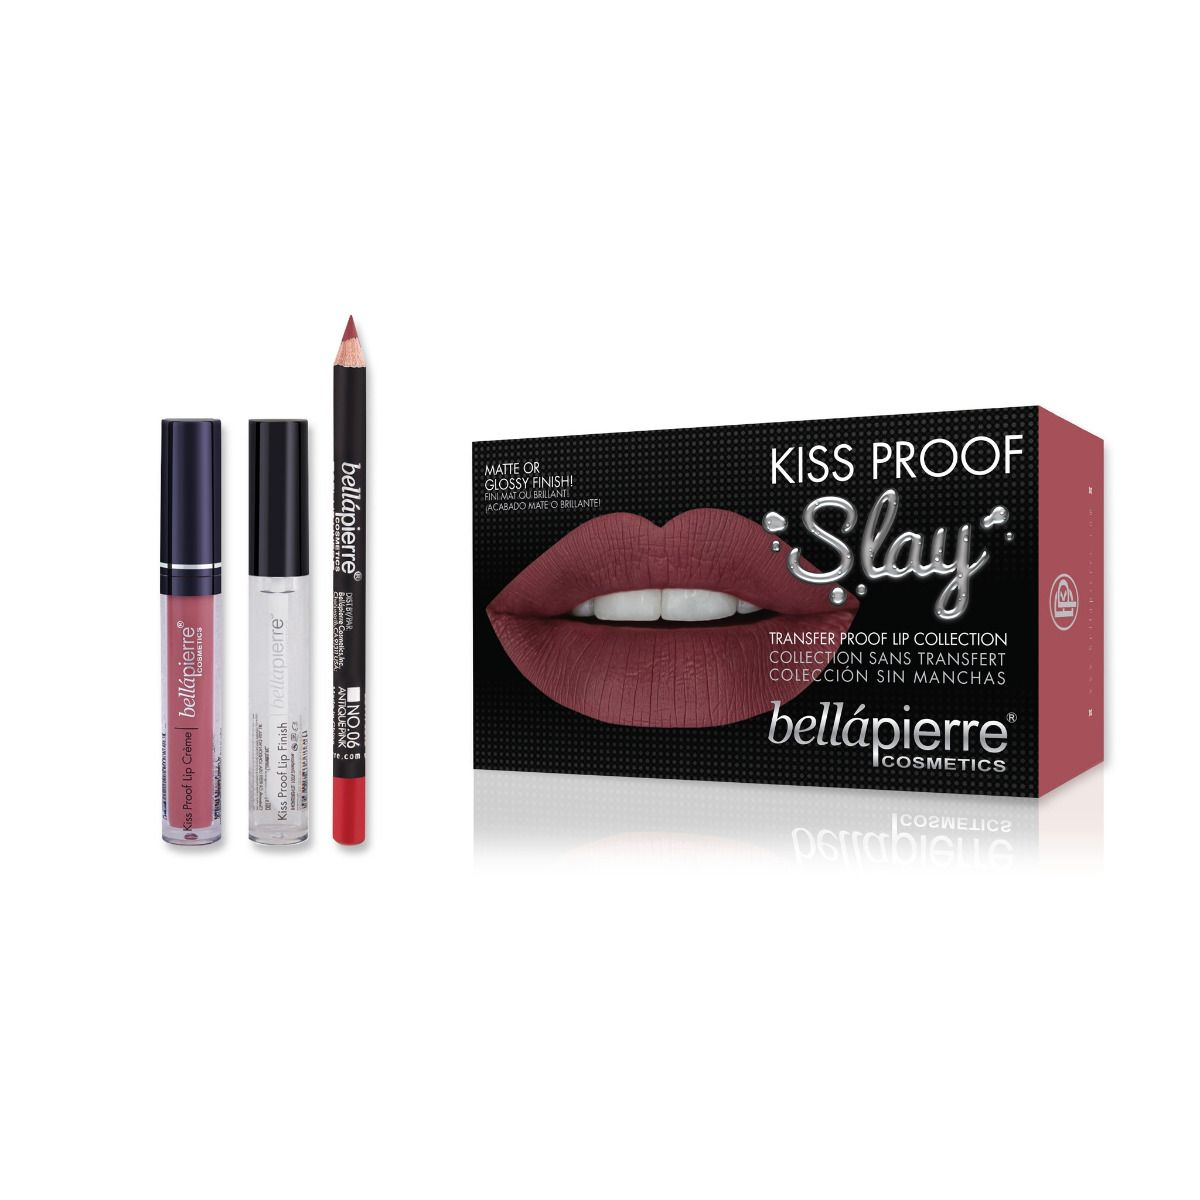 Bellapierre Kiss Proof Slay Lip Kit - Antique Pink